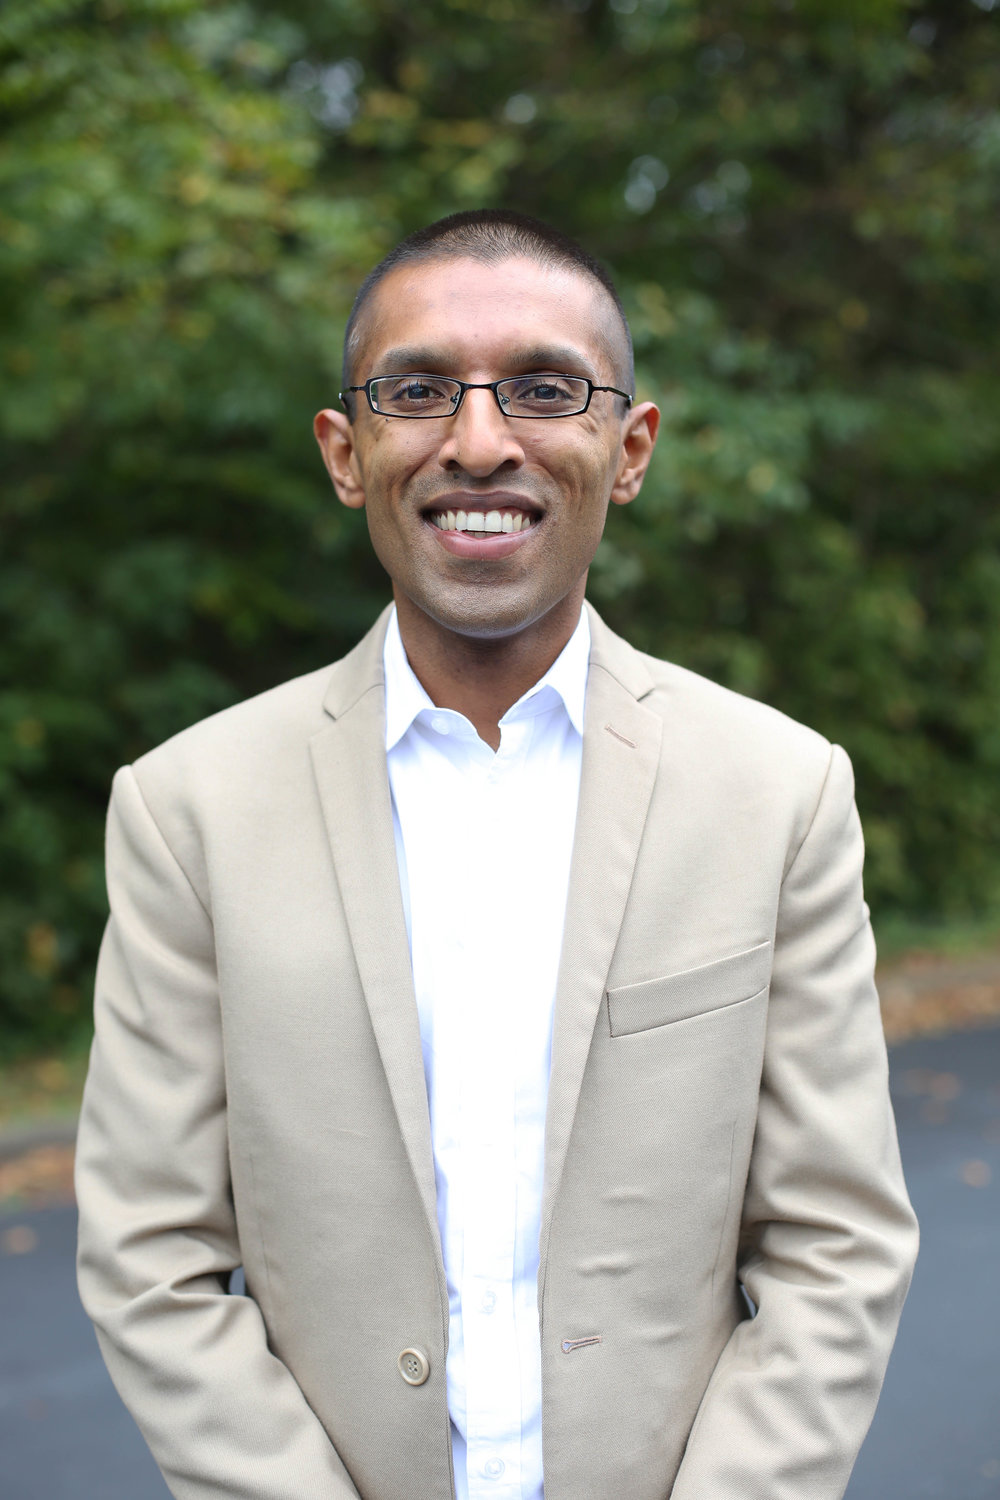 Sandeep Mazumder - Ruling Elder   Sandeep grew up in London, England, and he works at Wake Forest University as a professor of economics. He and his wife Gretchen have three children.